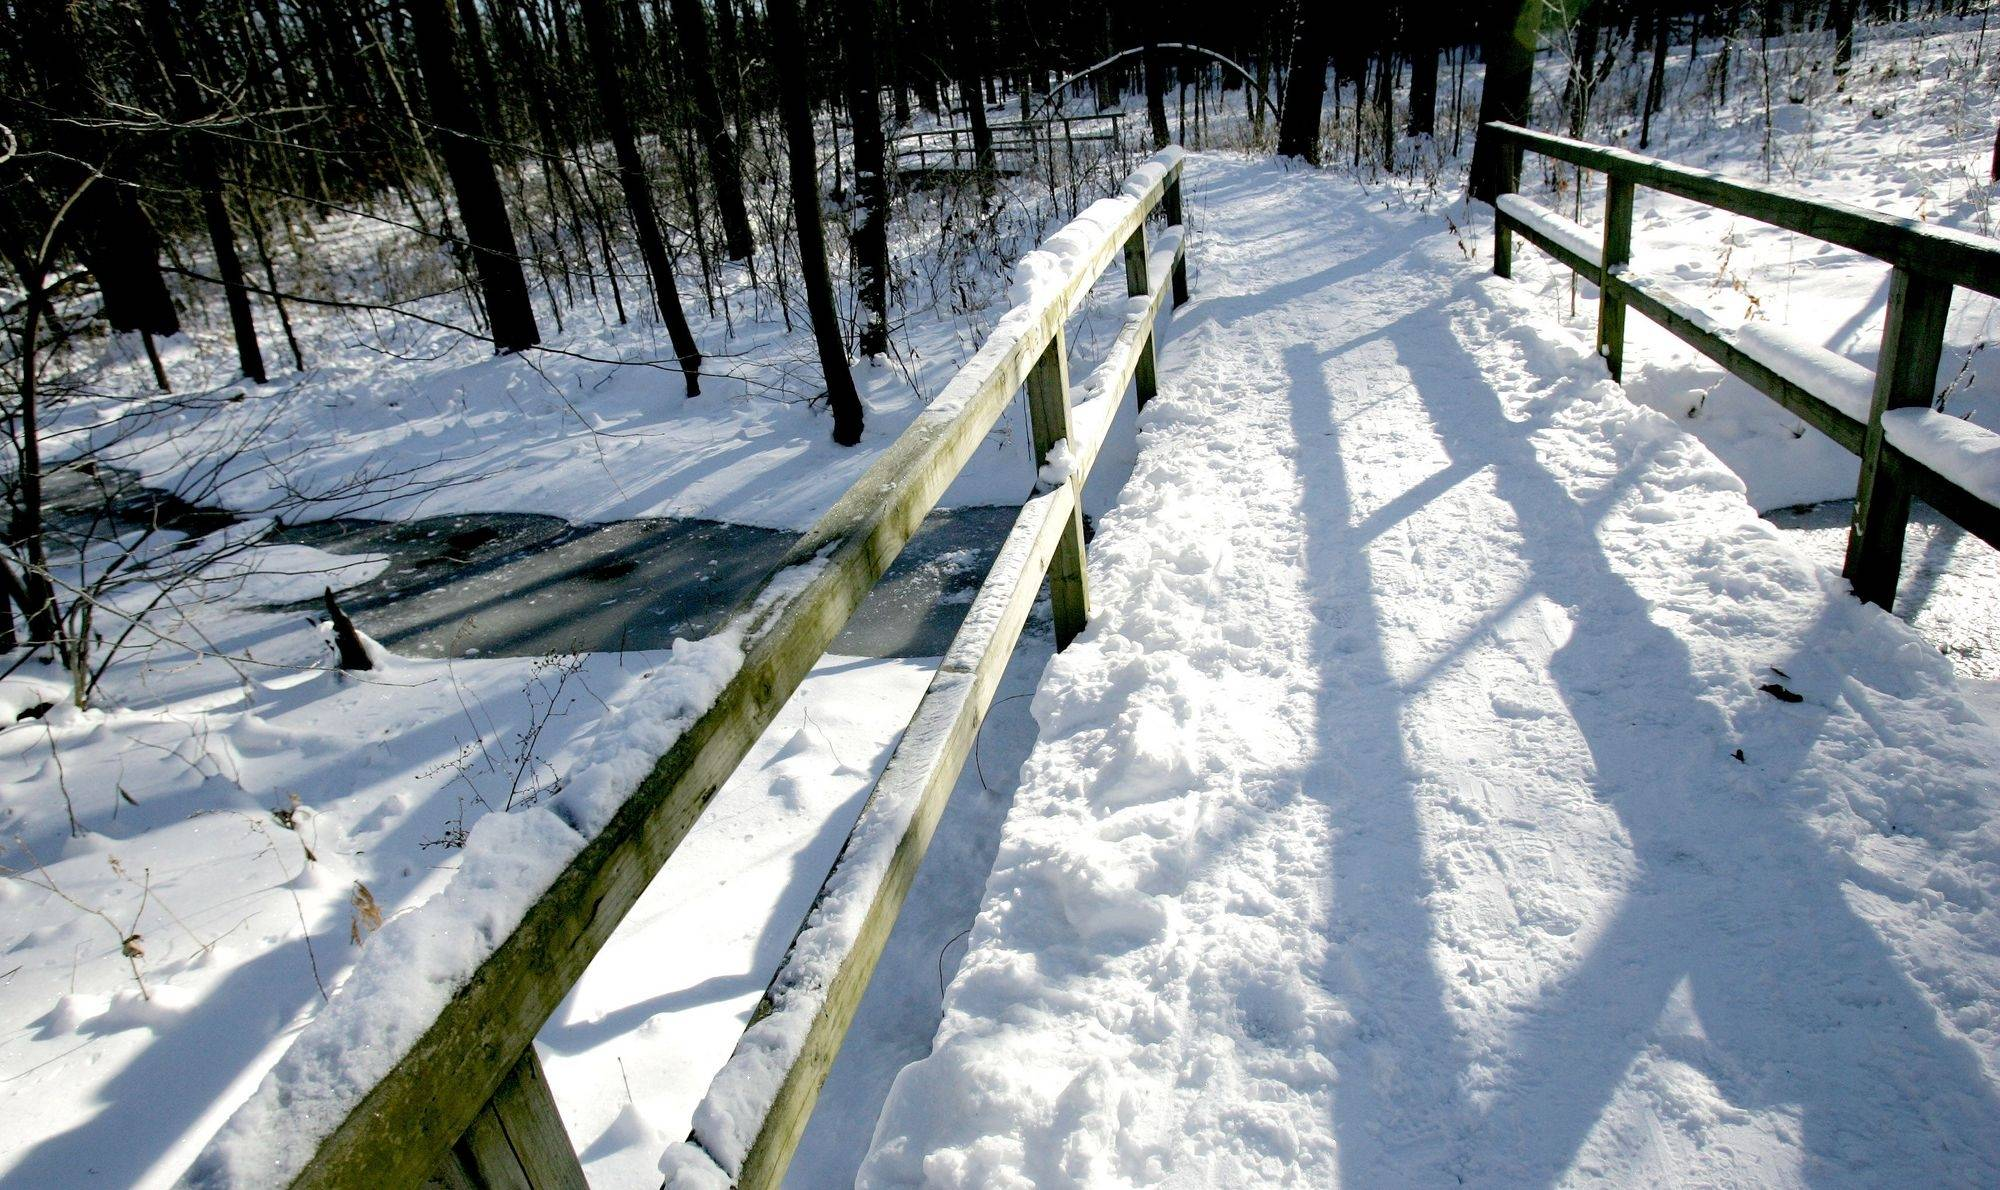 Like those at DuPage County's forest preserves, the trails at Morton Arboretum beckon cross-country skiers and even cold-weather runners.